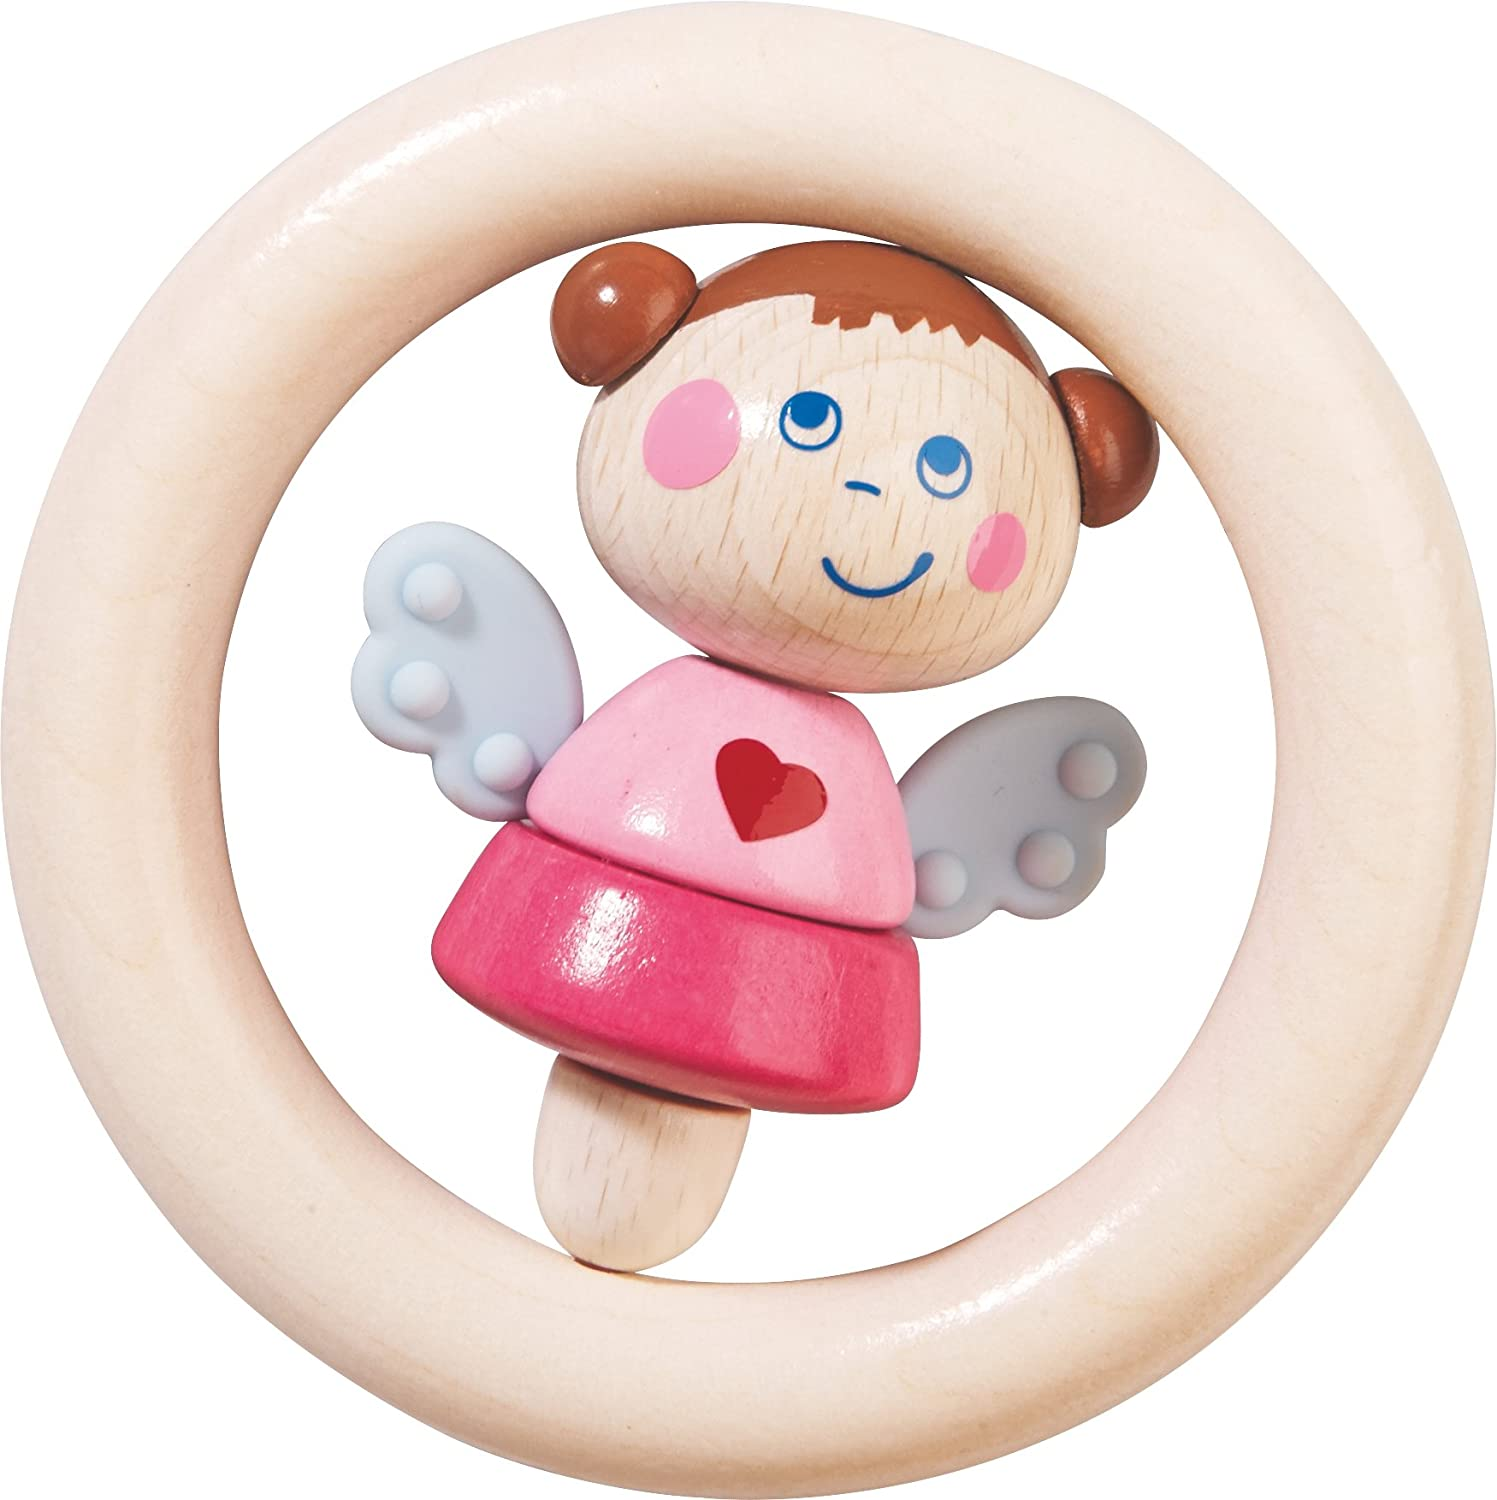 Made in Germany HABA Guardian Angel Natalie Wooden Clutching Toy /& Teether 301980